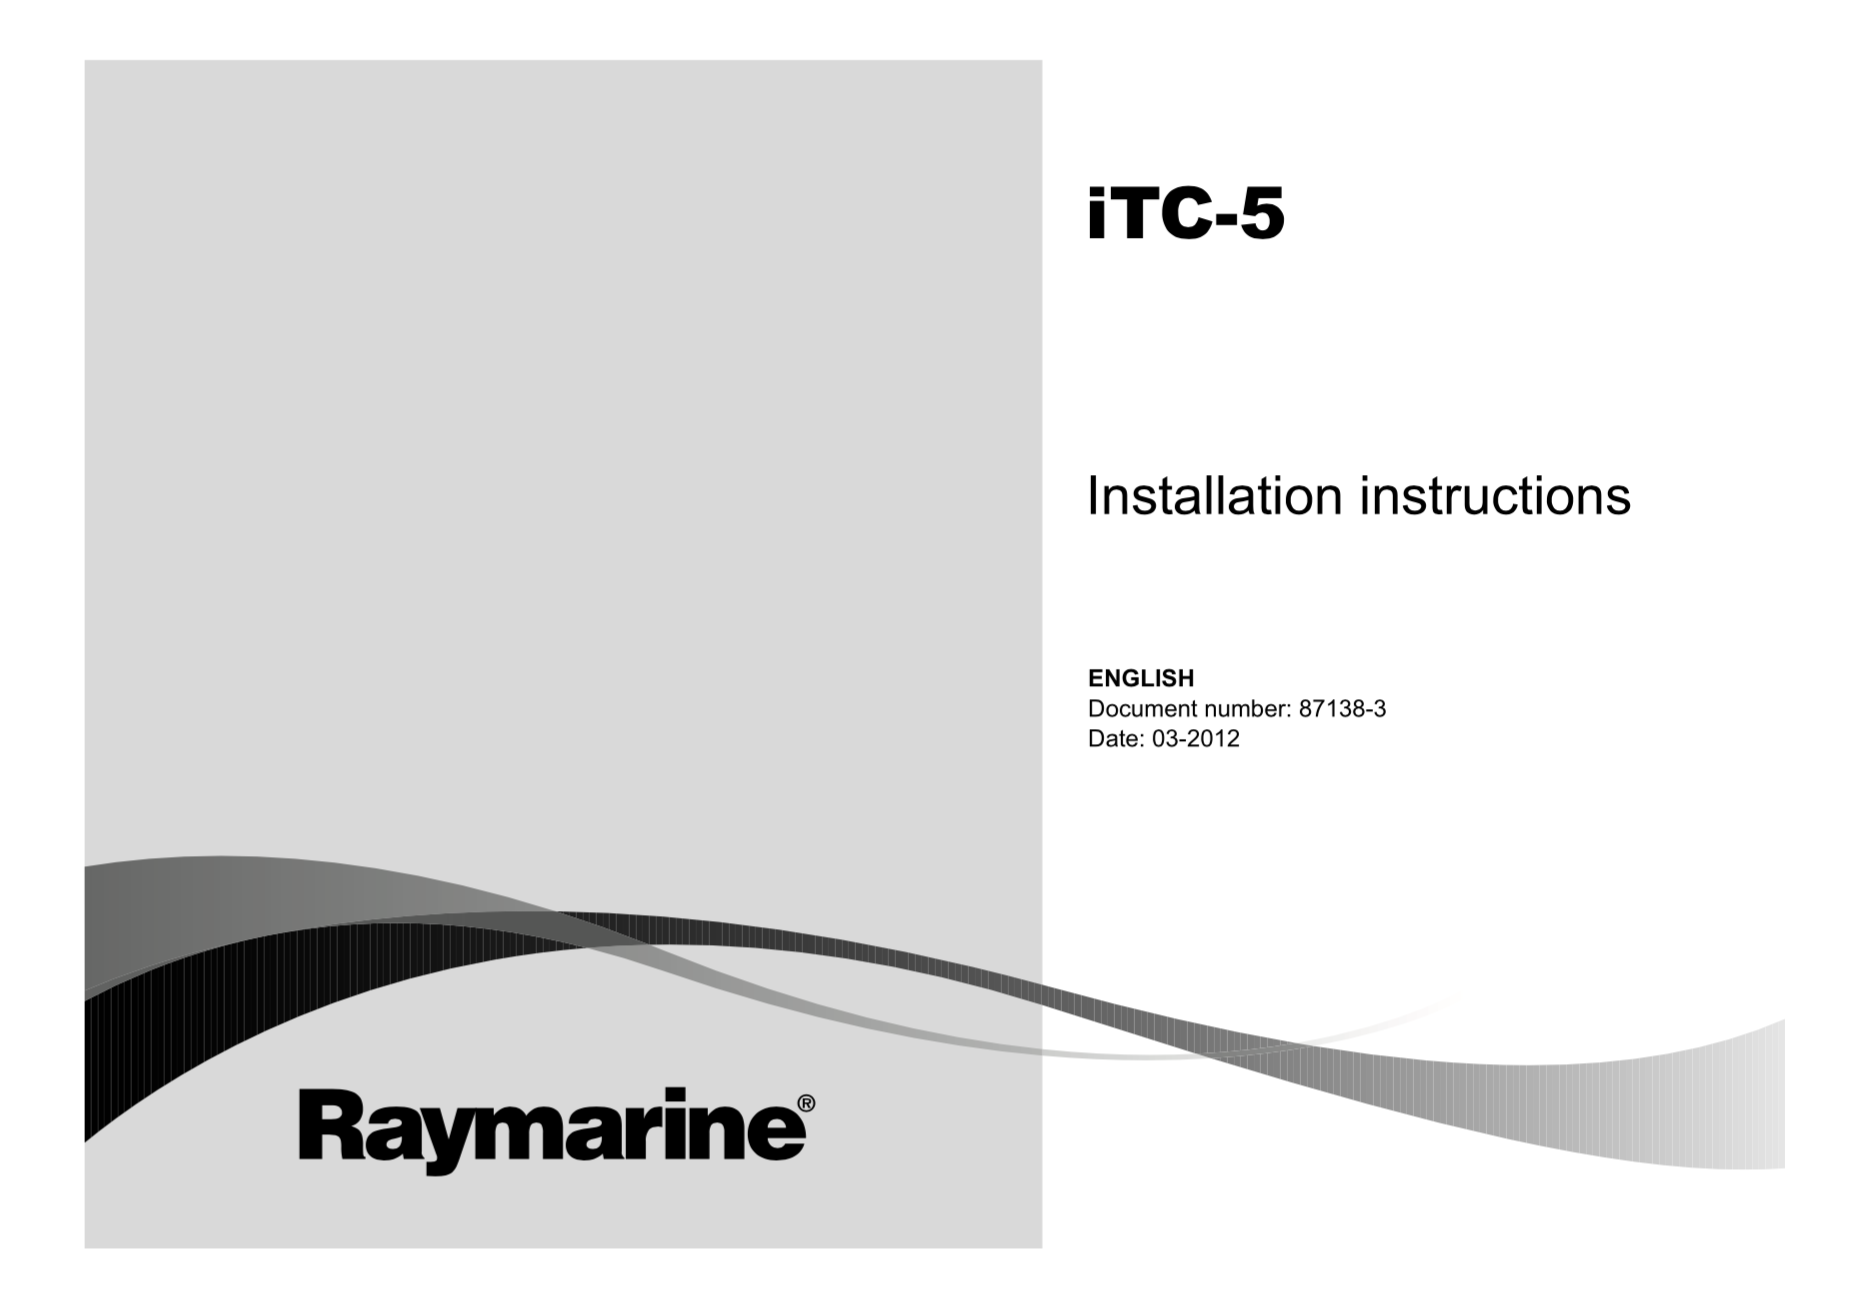 itc-5 instrument transducer converter installation instructions en.png